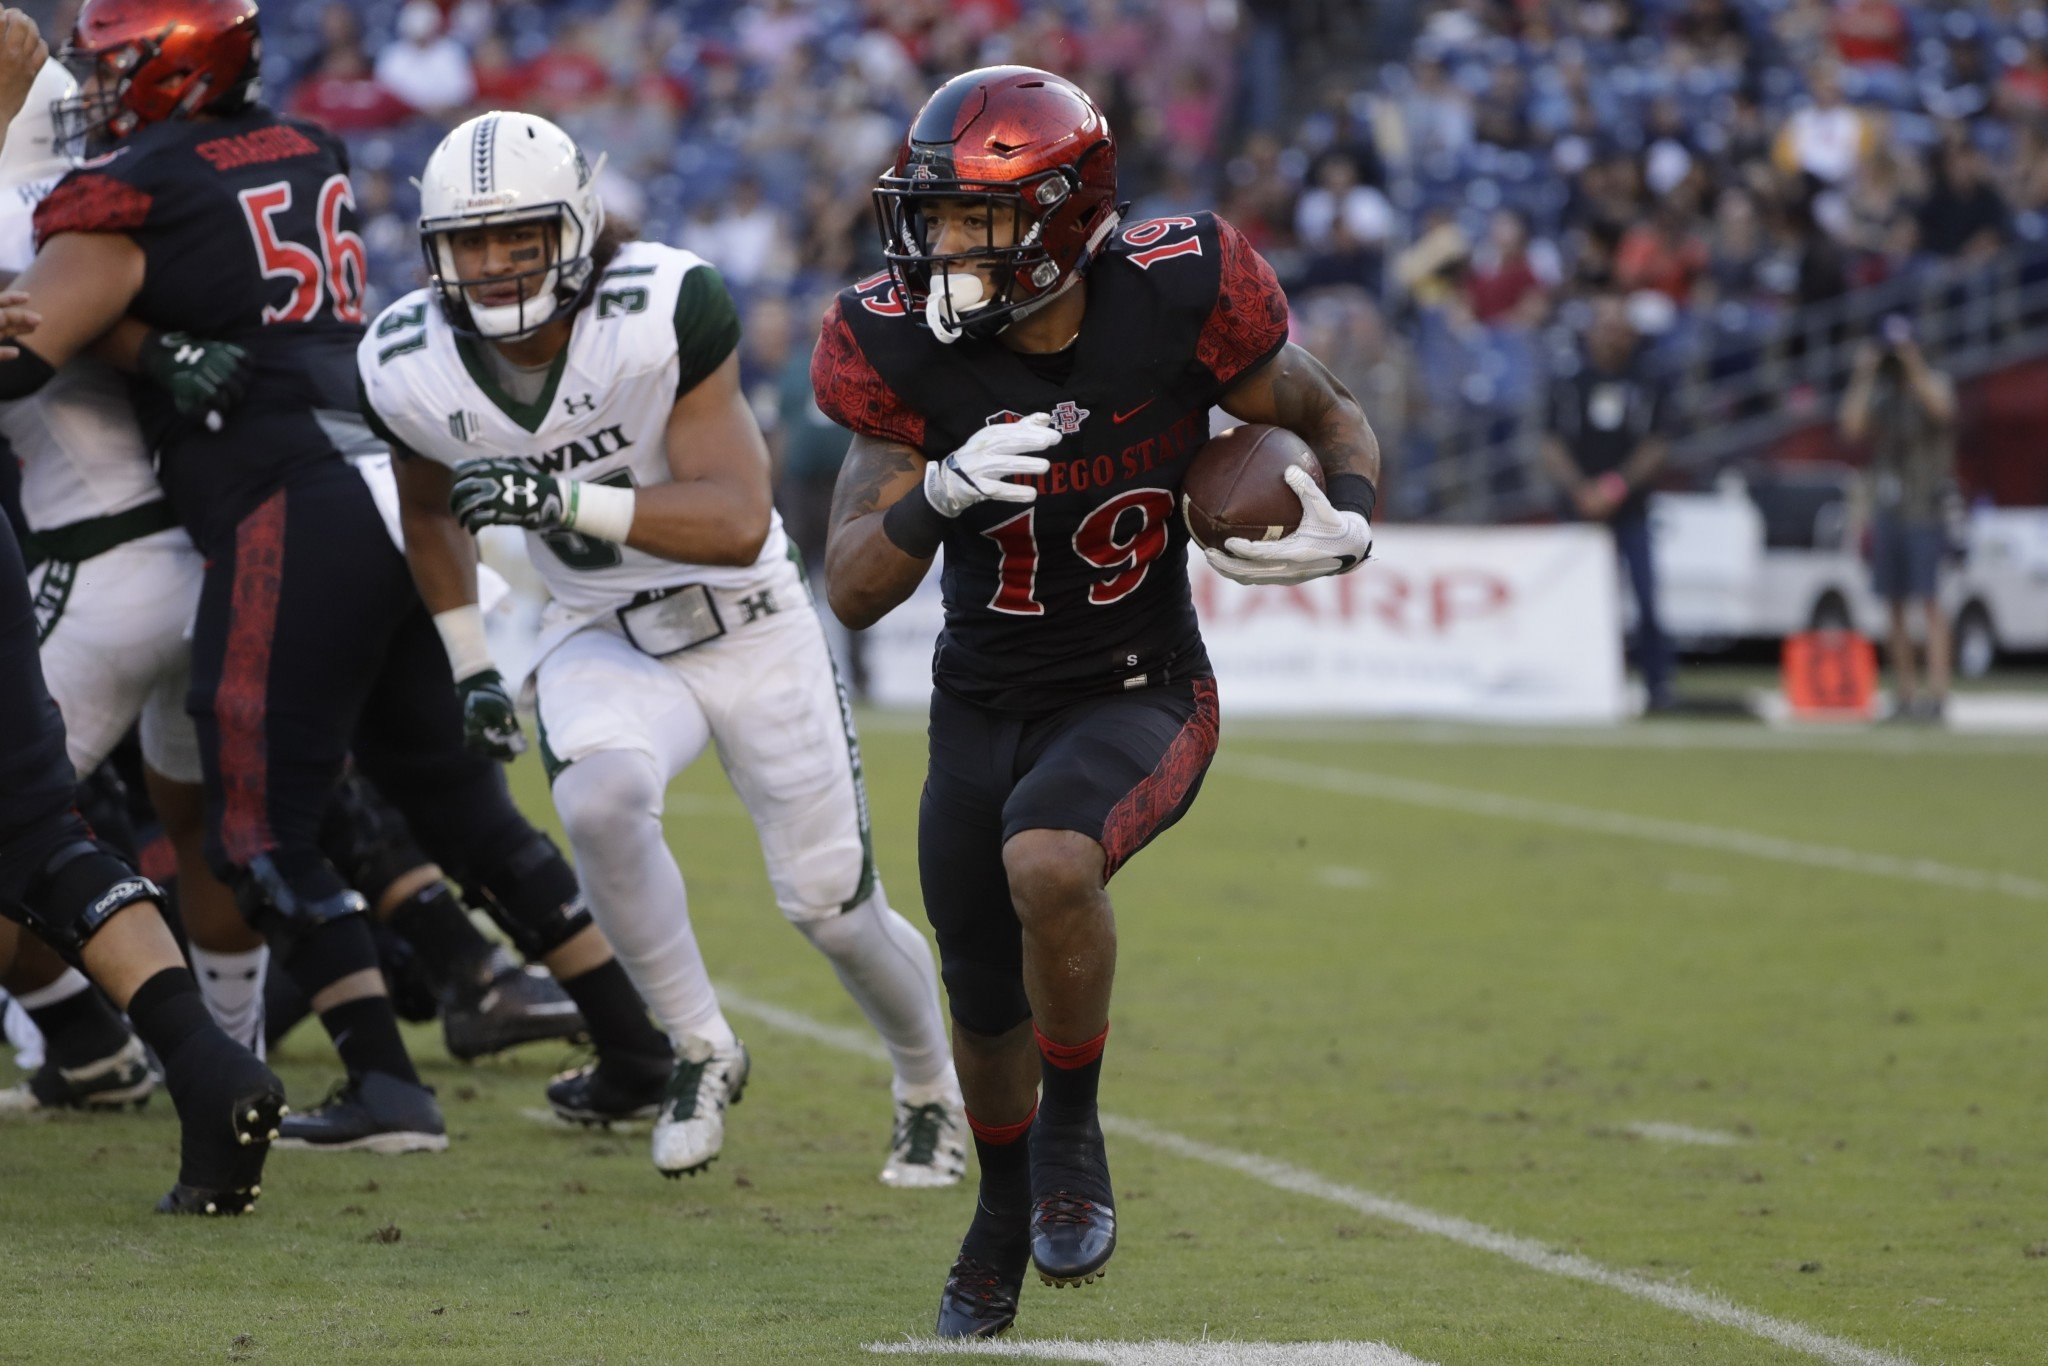 Donnel Pumphrey broke Ron Dayne's record in the Las Vegas Bowl. (AP Photo/Gregory Bull)